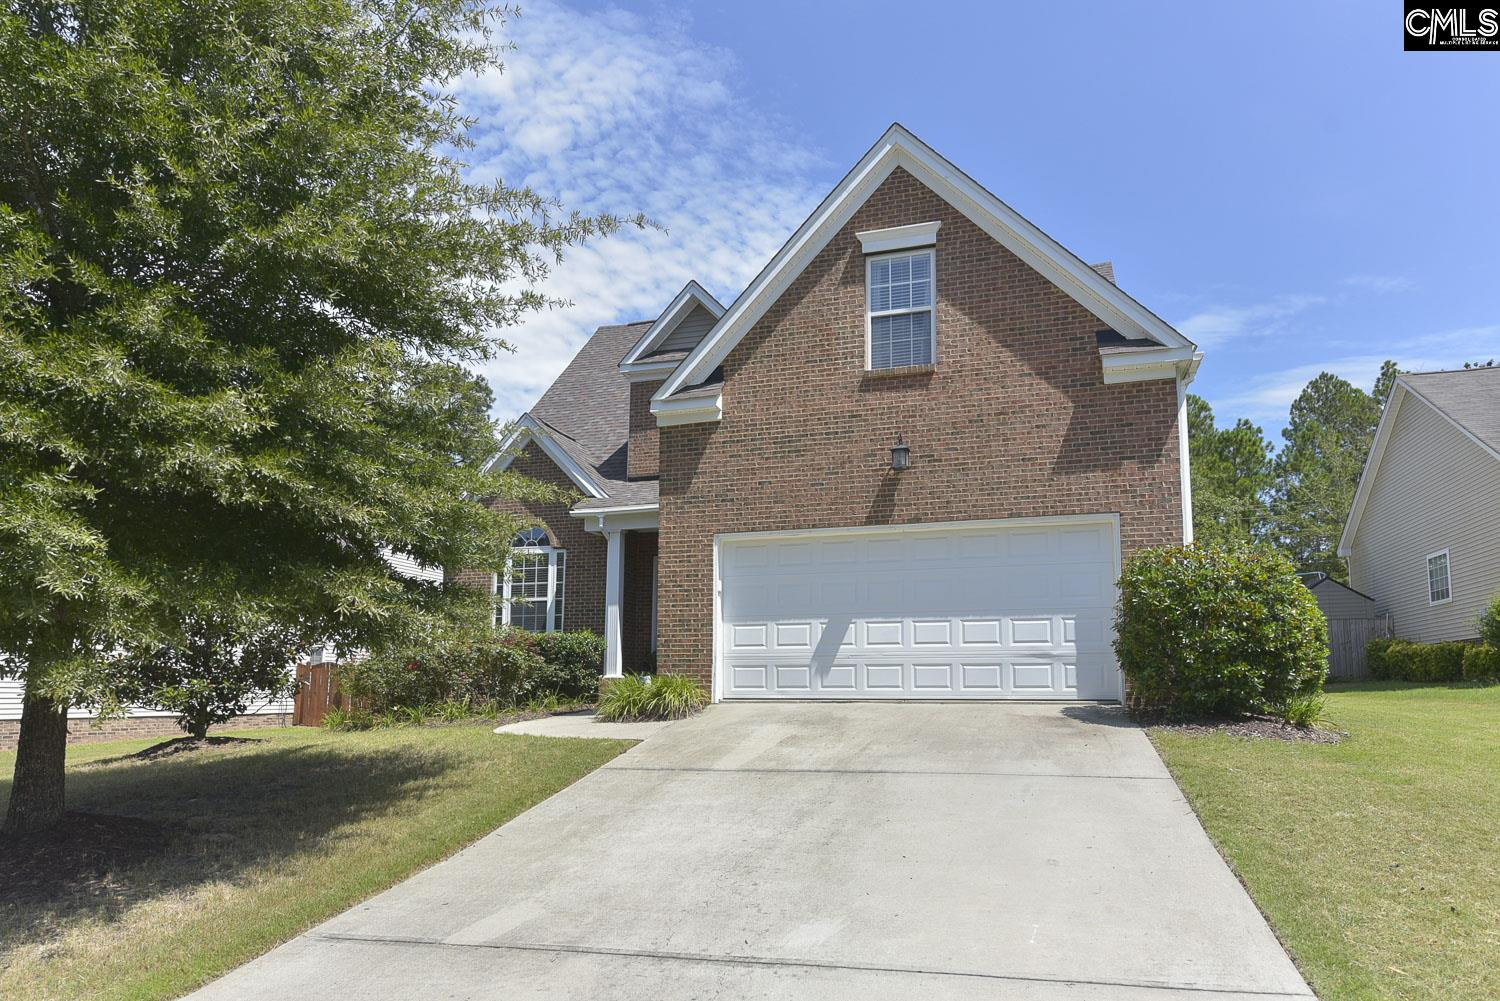 209 Wood Eden Lexington, SC 29072